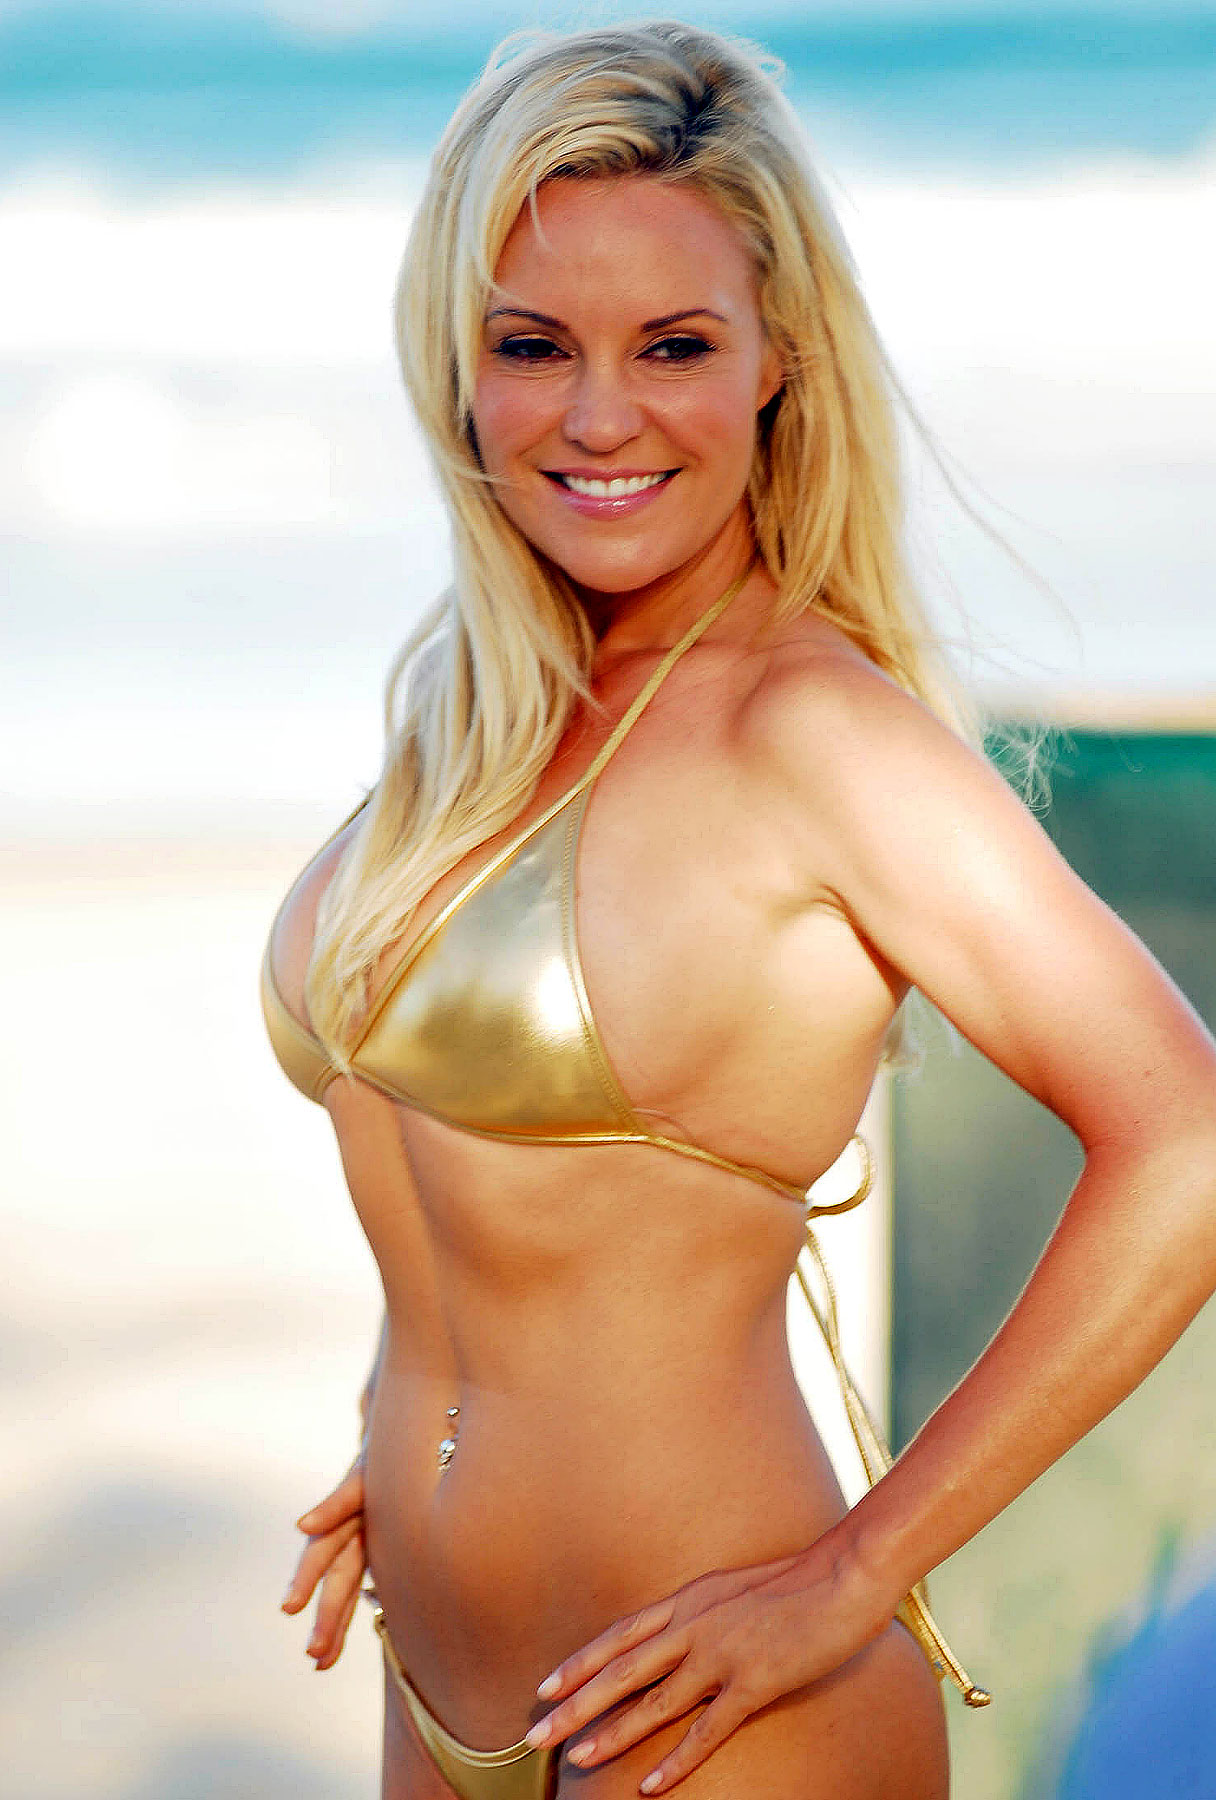 Bridget Marquardt: Beach Gig Requires Small Outfits, Big Suitcases